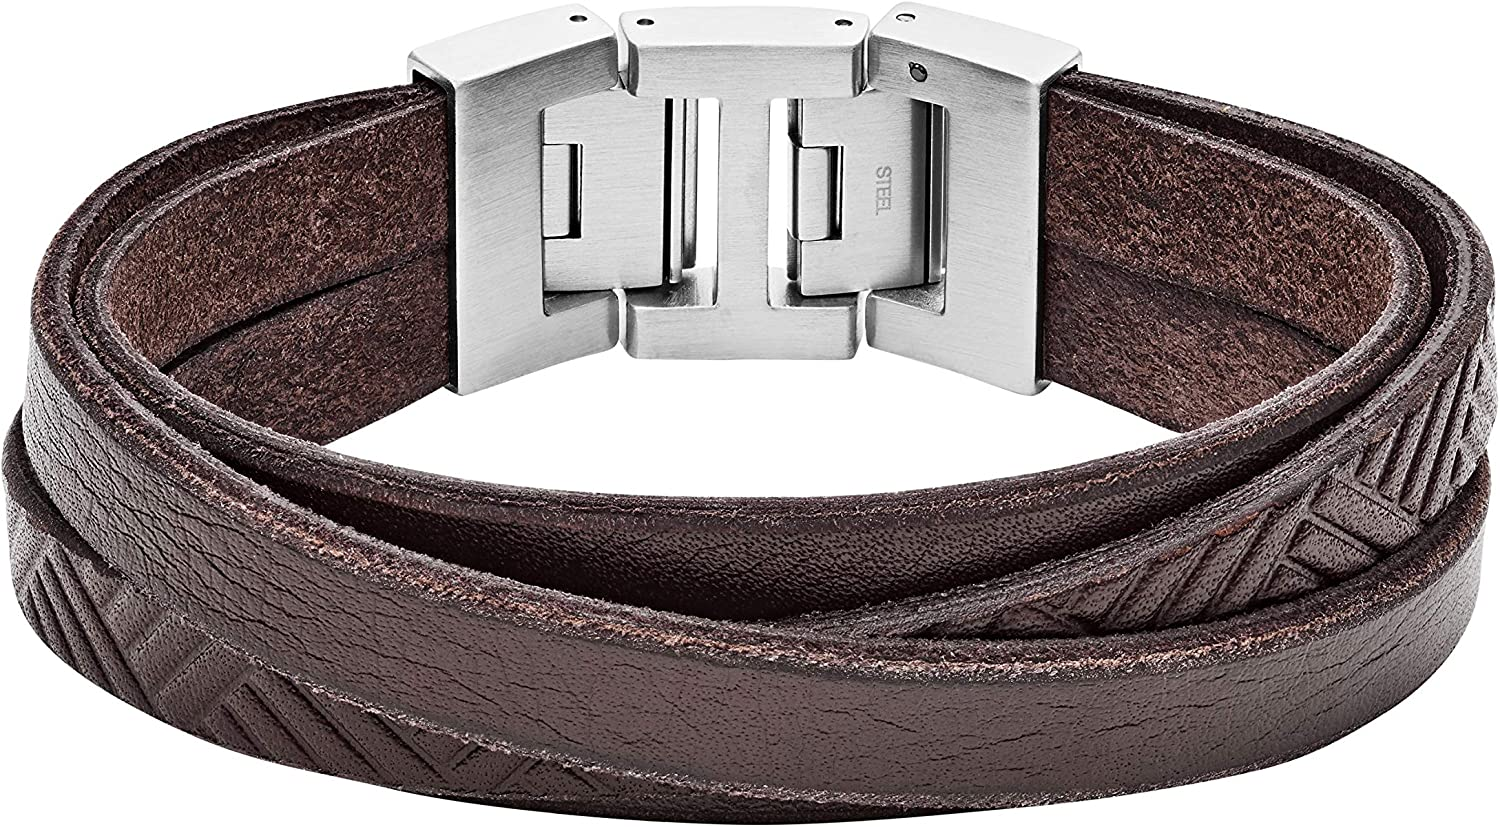 Fossil Vintage Casual Textured Brown Leather Wrist Wrap Cuff Bracelet